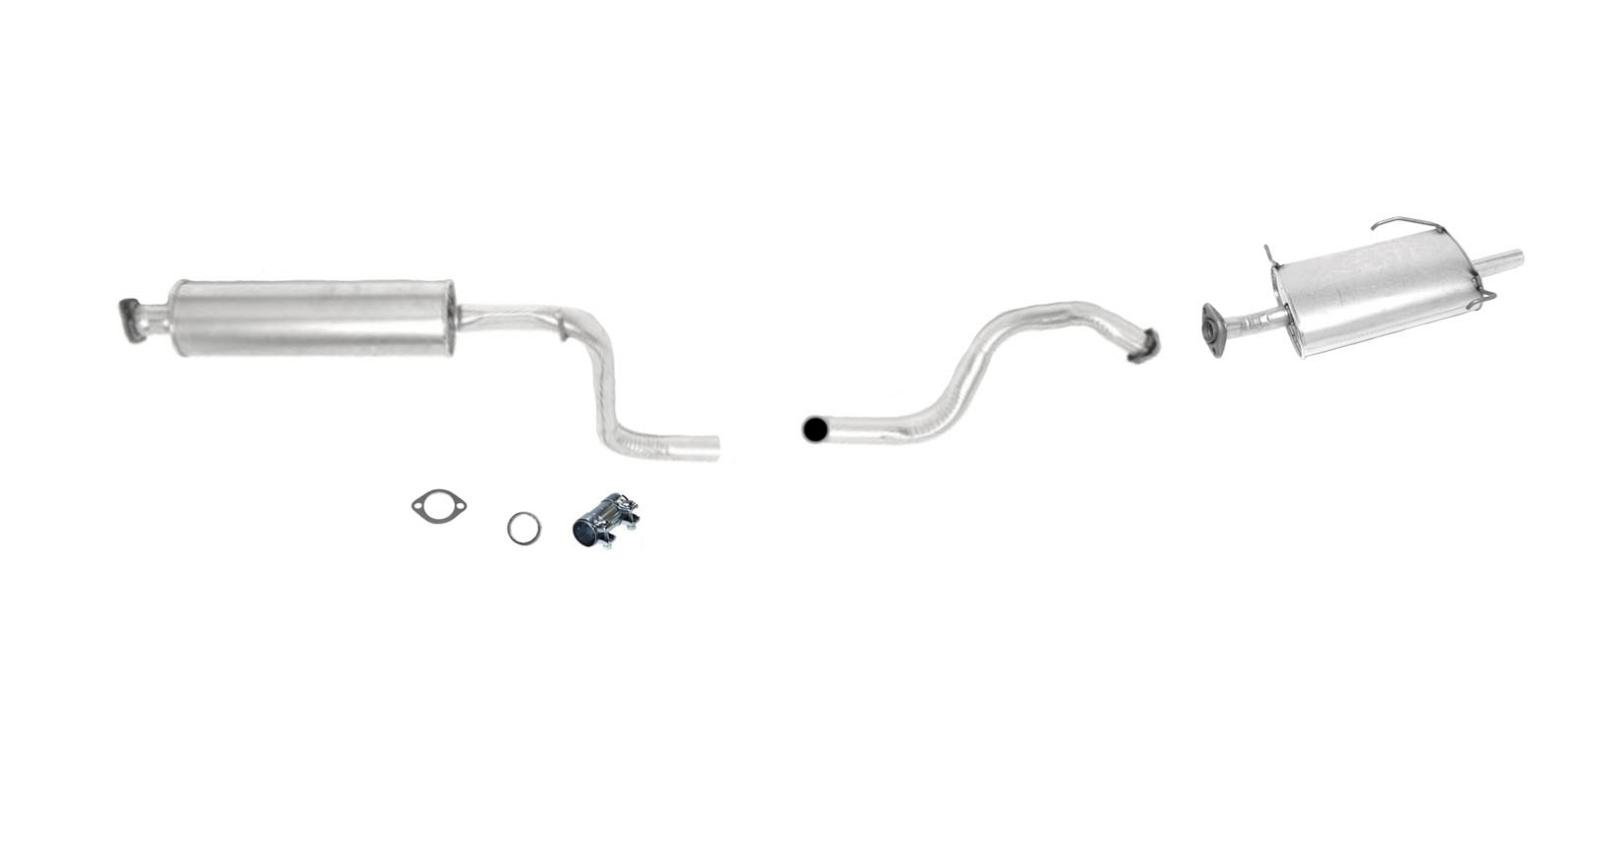 muffler exhaust pipe system fits 97 99 maxima 97